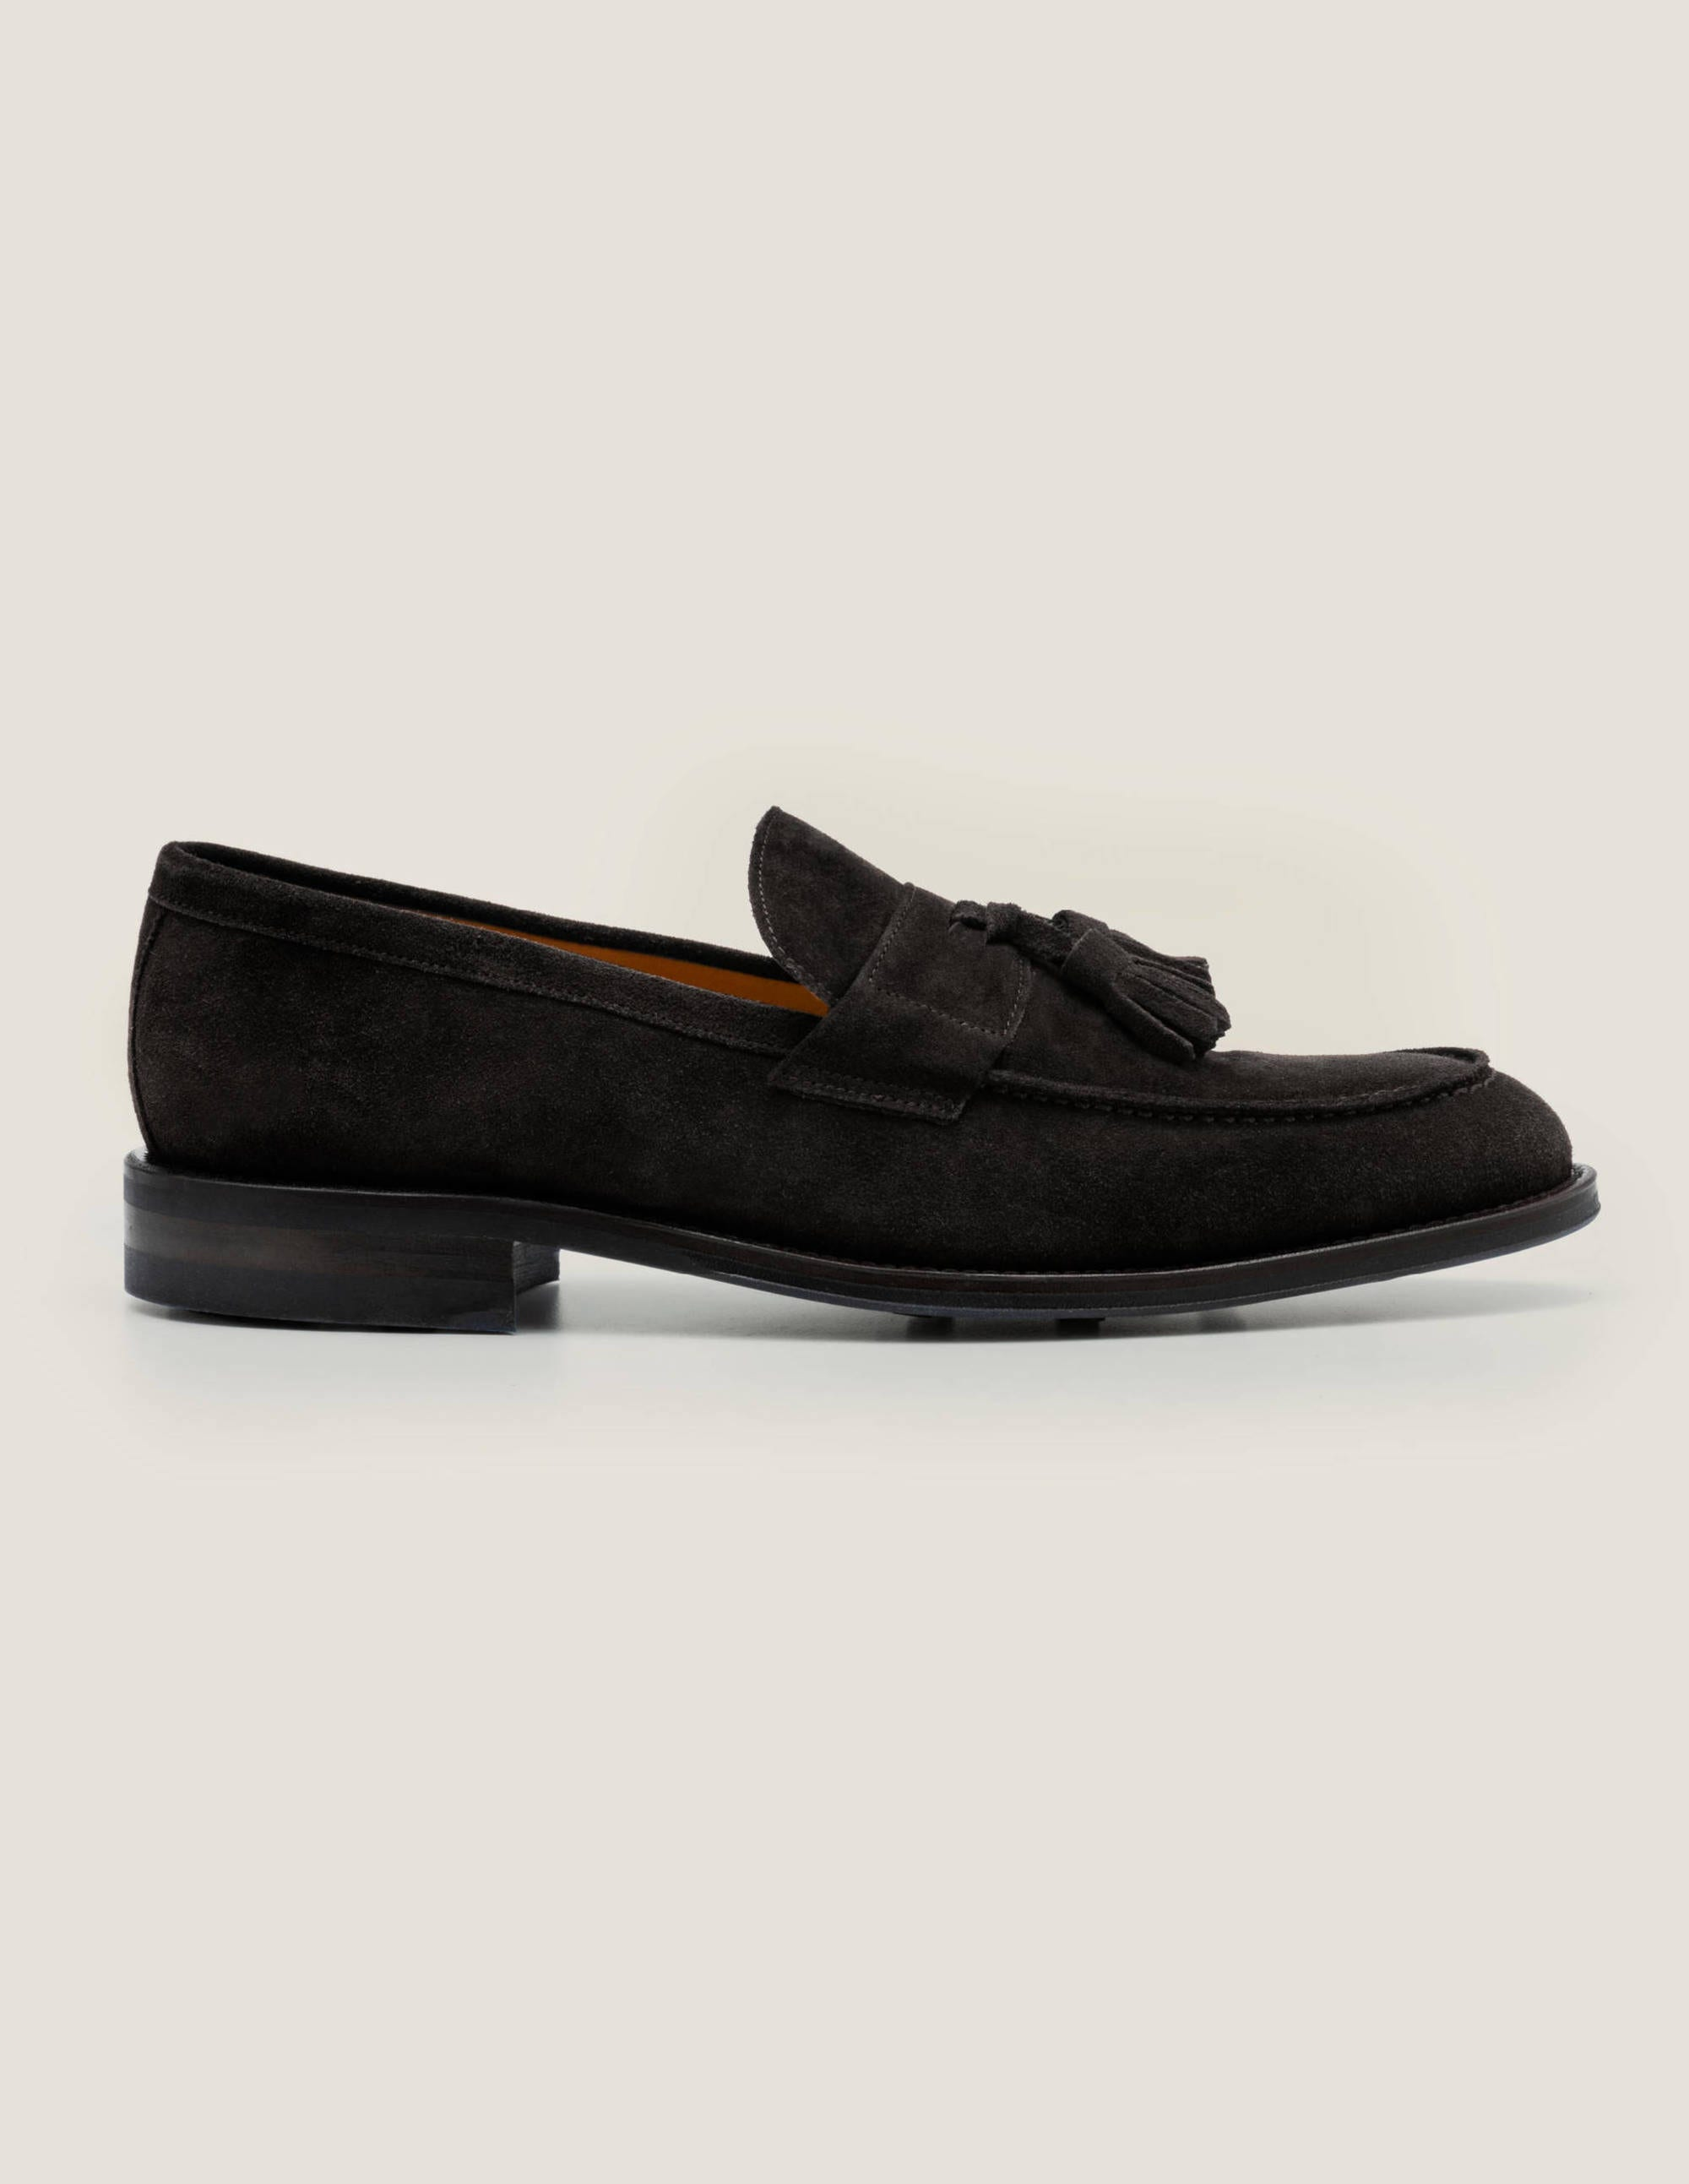 Corby Loafer - Black Suede | Boden US